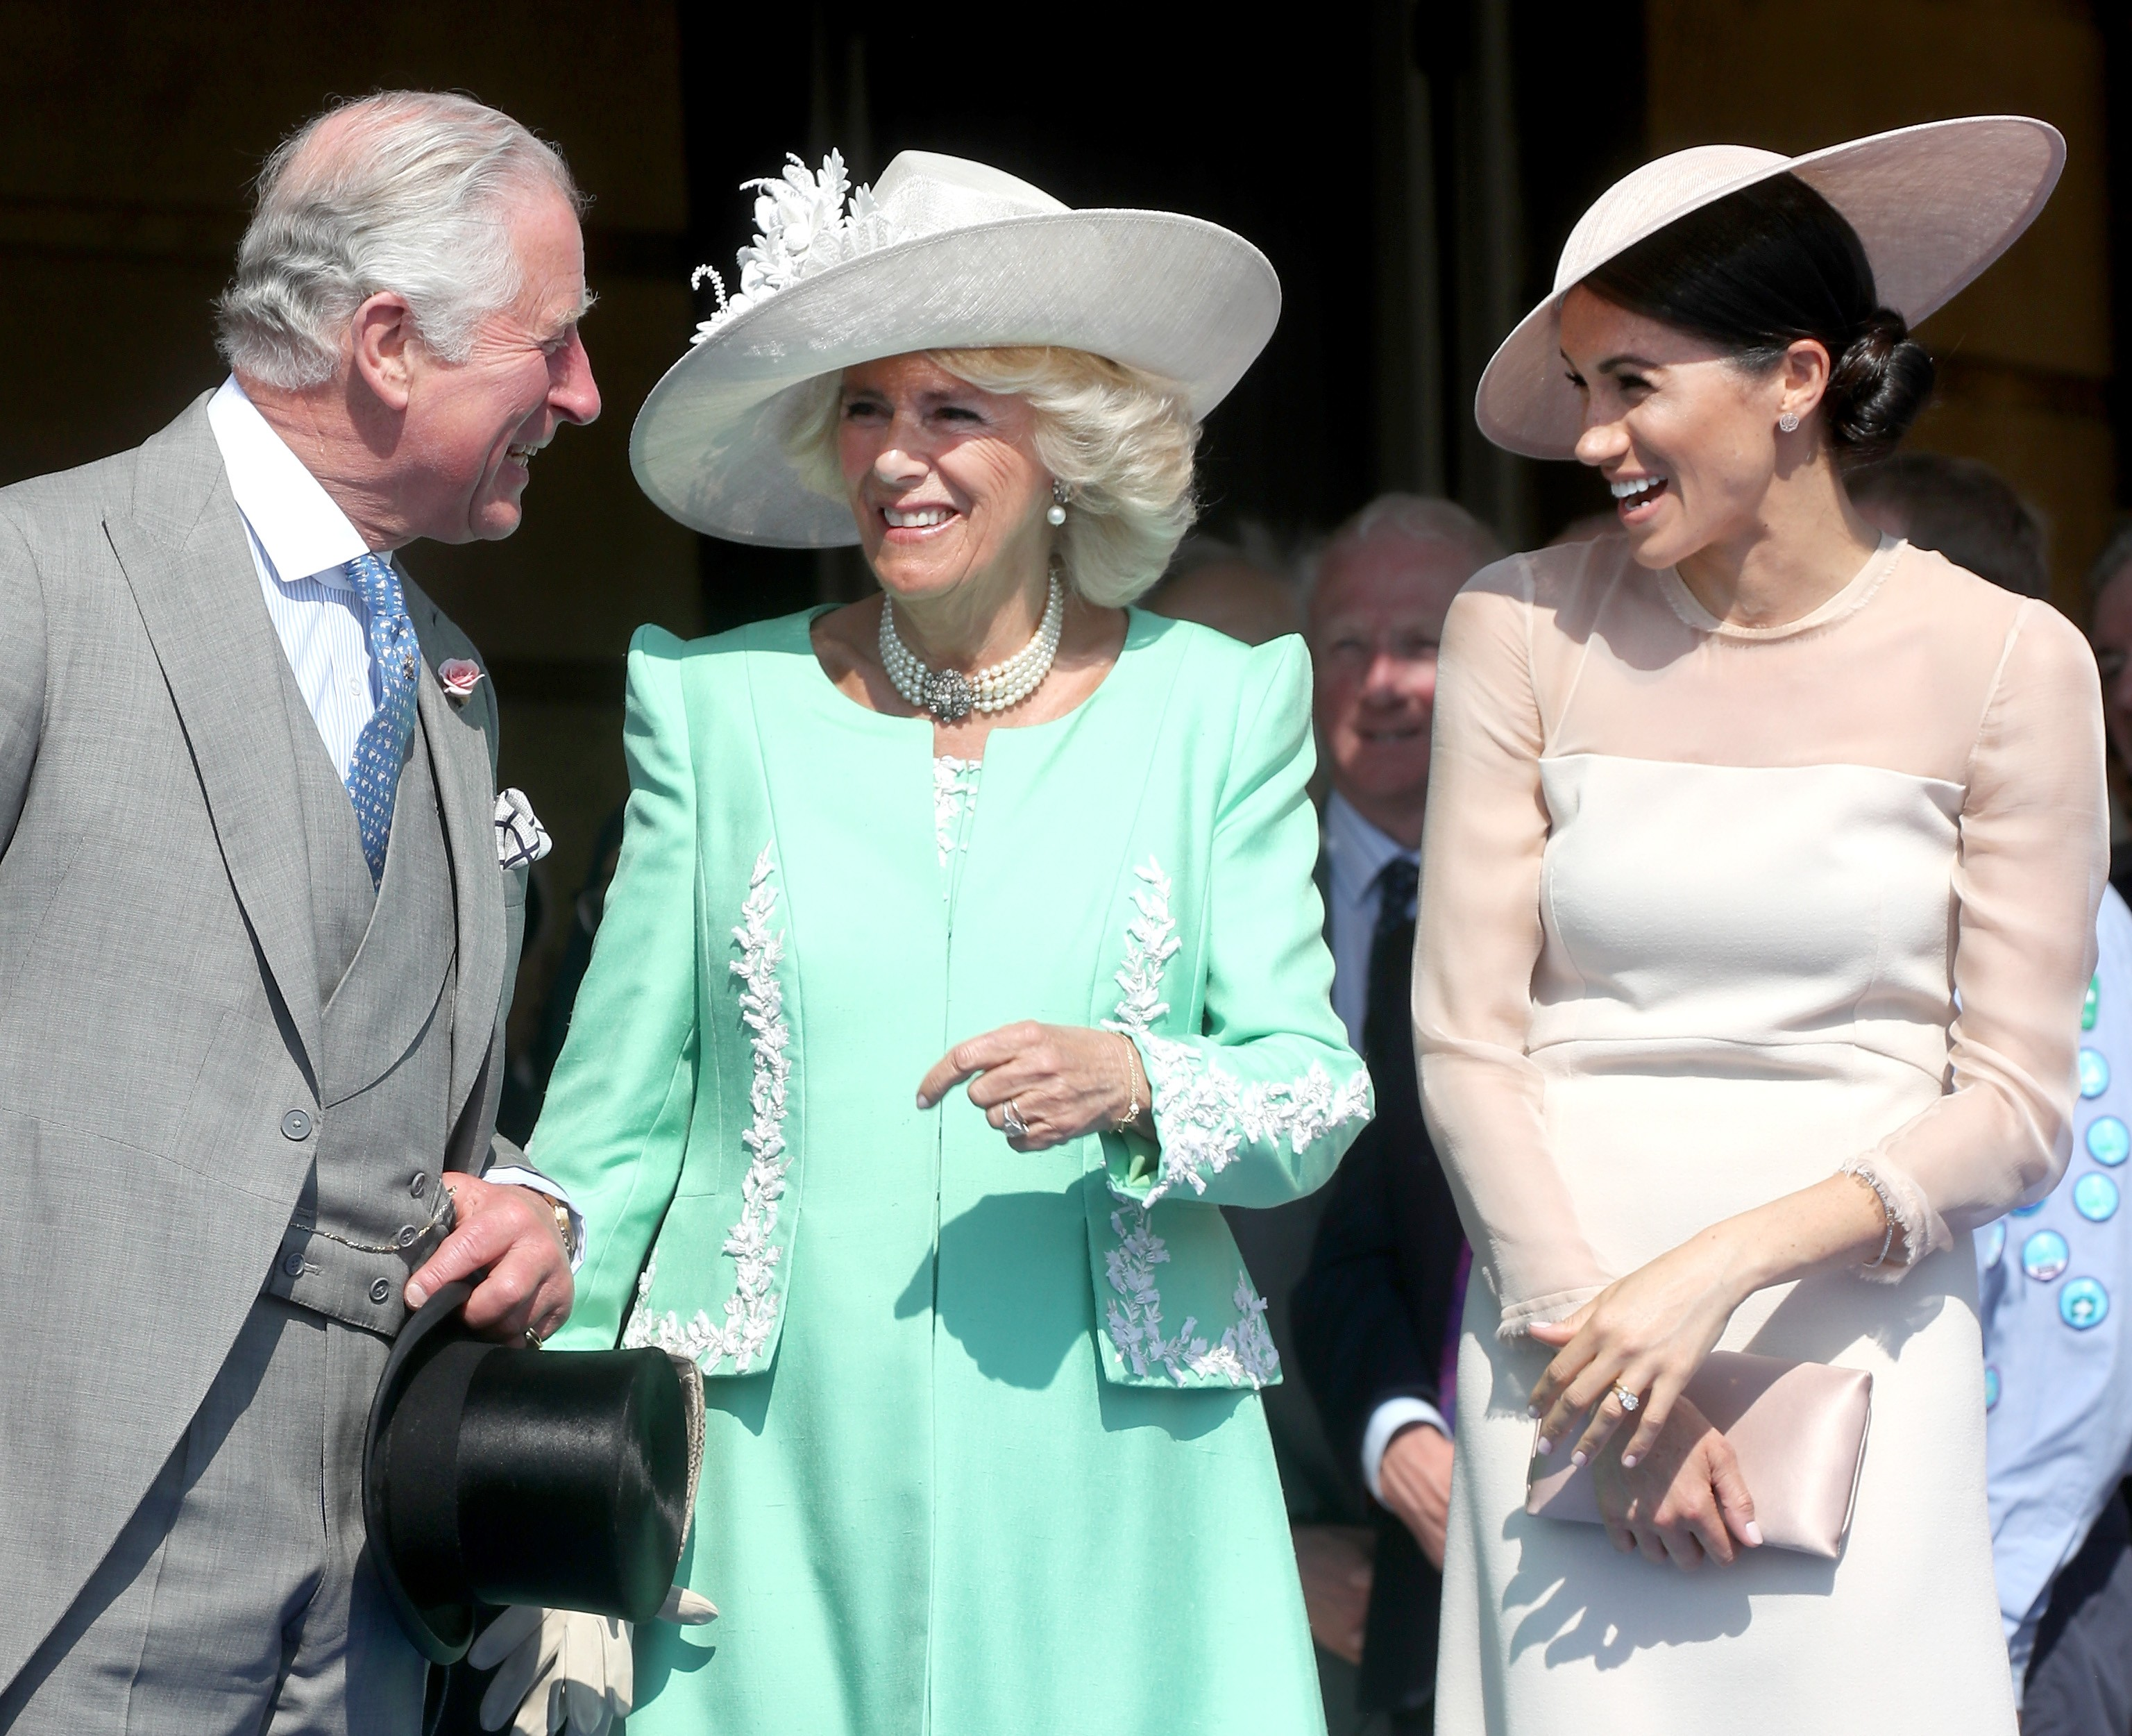 Príncipe Charles, Camilla Parker e Meghan Markle (Foto: Getty Images)